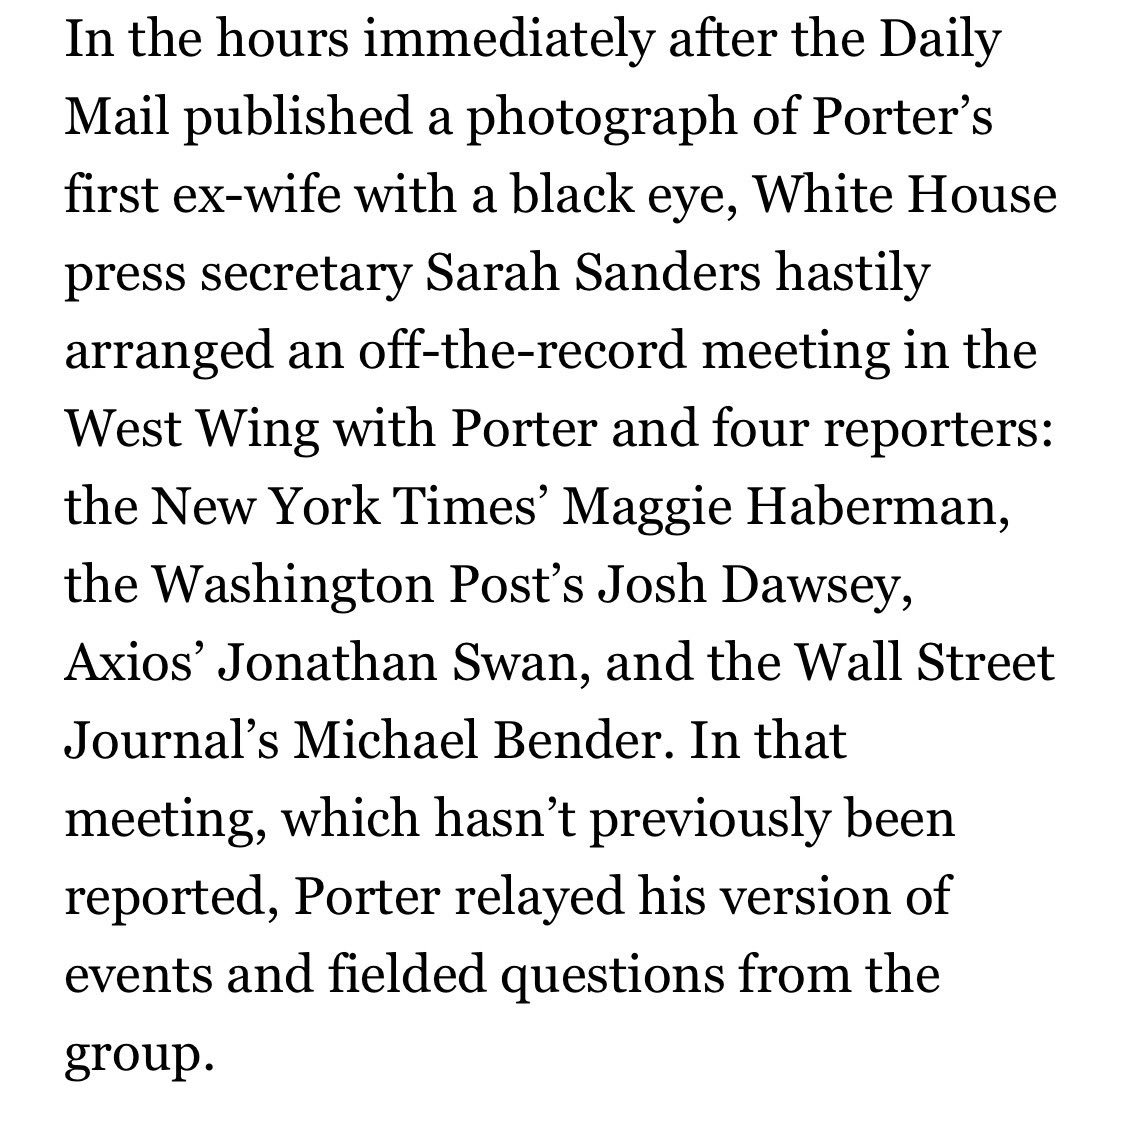 . reports that — despite claims they showed Porter the door shortly after the abuse story broke —  arranged for Porter to tell his side of the stories (3 women alleging abuse) to 4 print reporters. Your tax dollars at work.